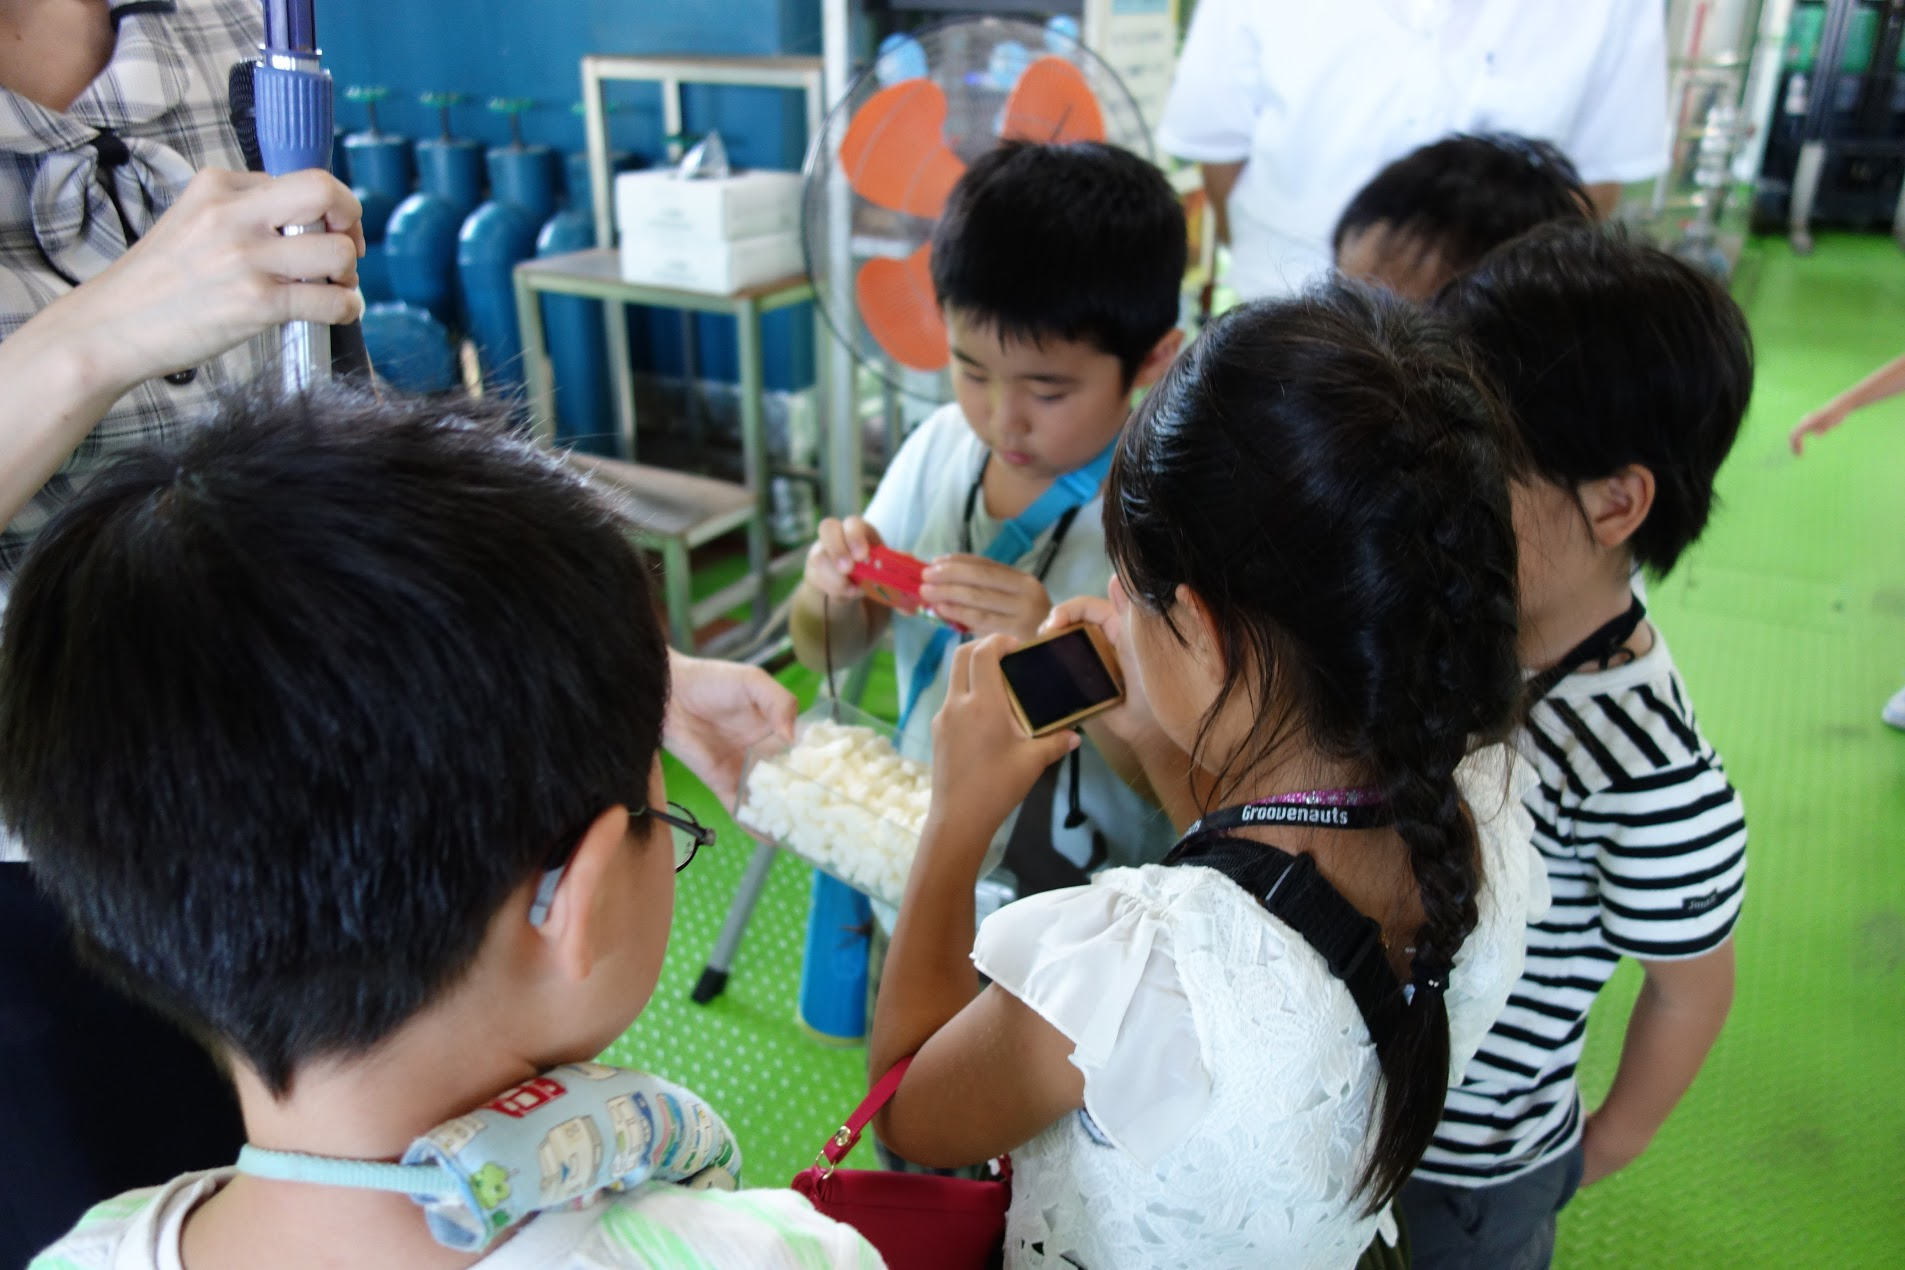 Summer School Report #7: Let's go see technology in action! Field trips to the TOTO Museum and Shabondama Soap factory